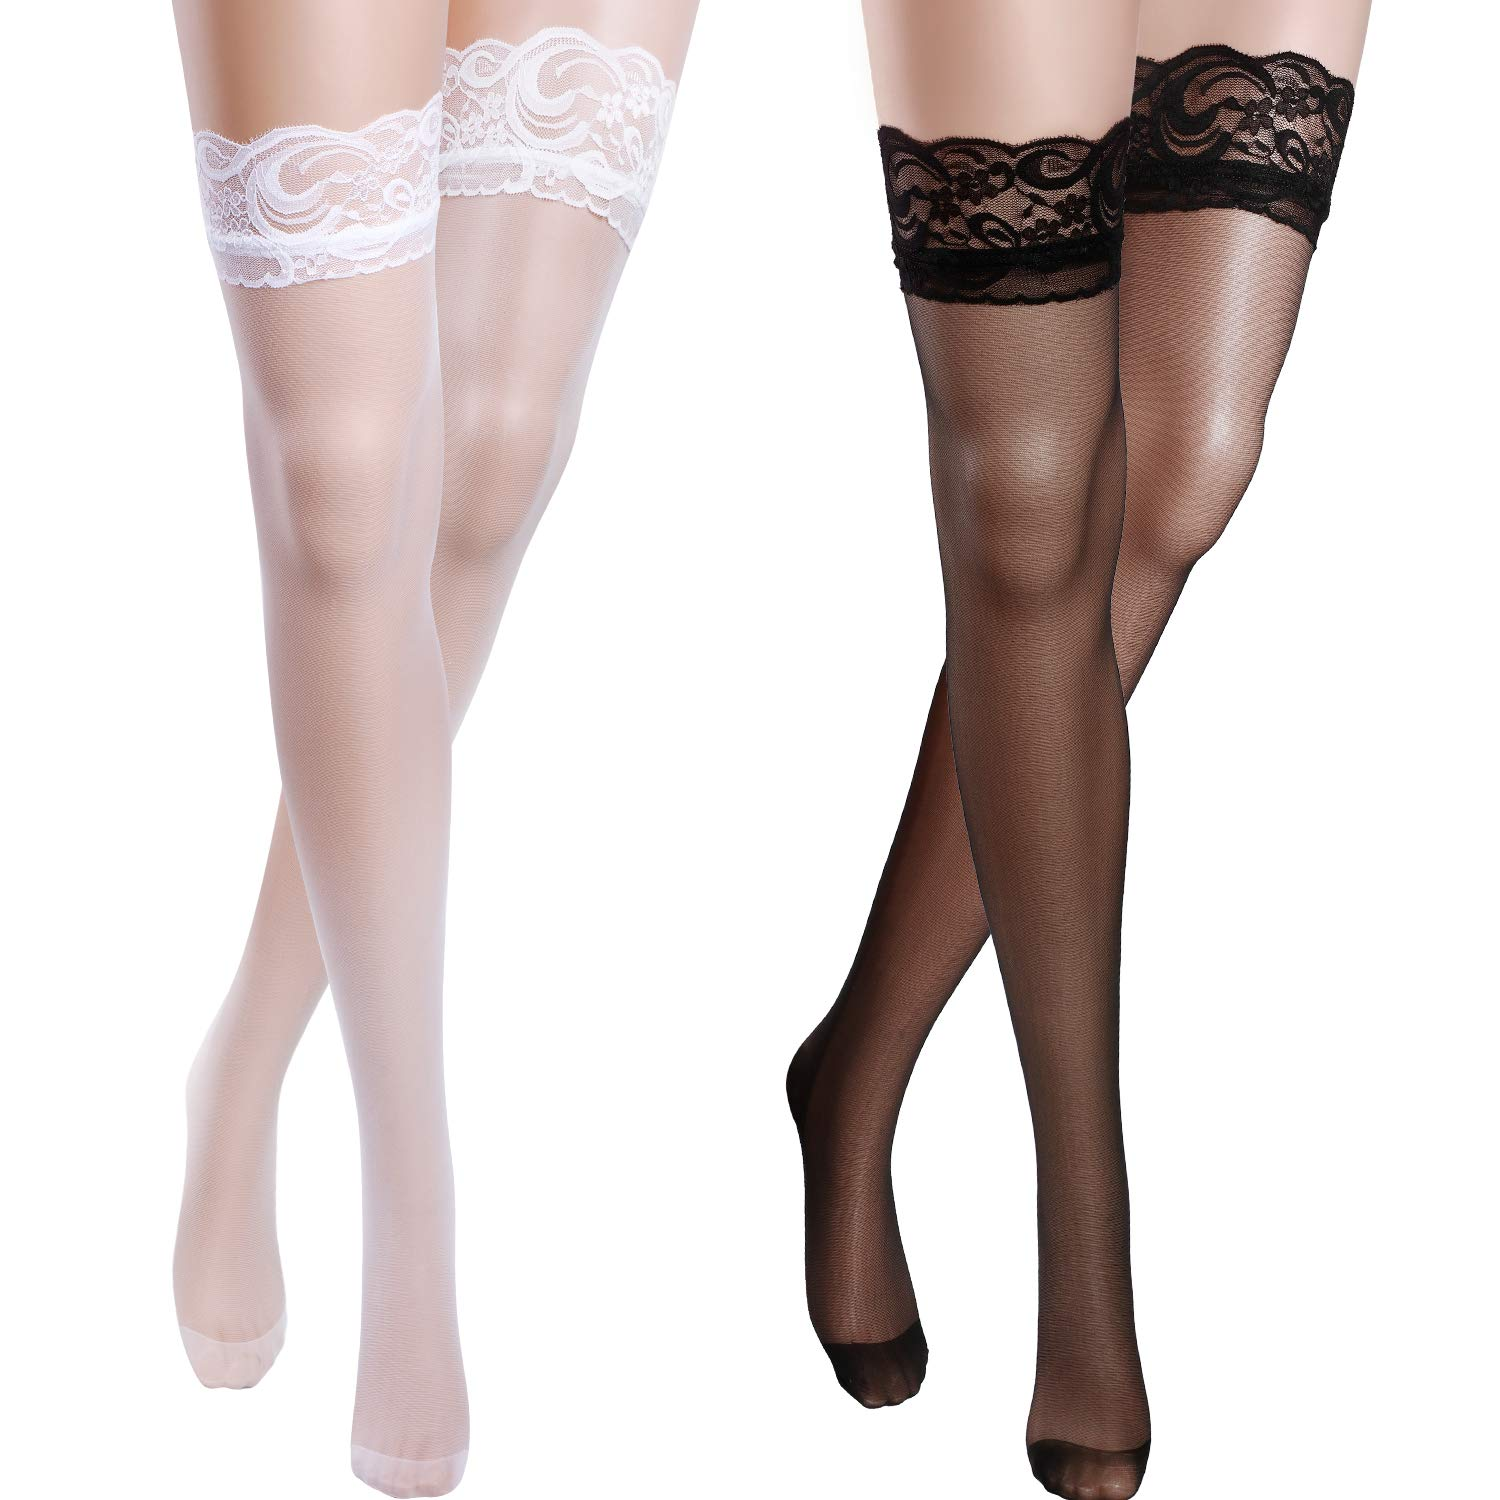 SATINIOR 2 Pairs Lace Sheer Thigh High Stockings Opaque Hold Up Stockings One Size for Women, 2 Pairs, Black and White